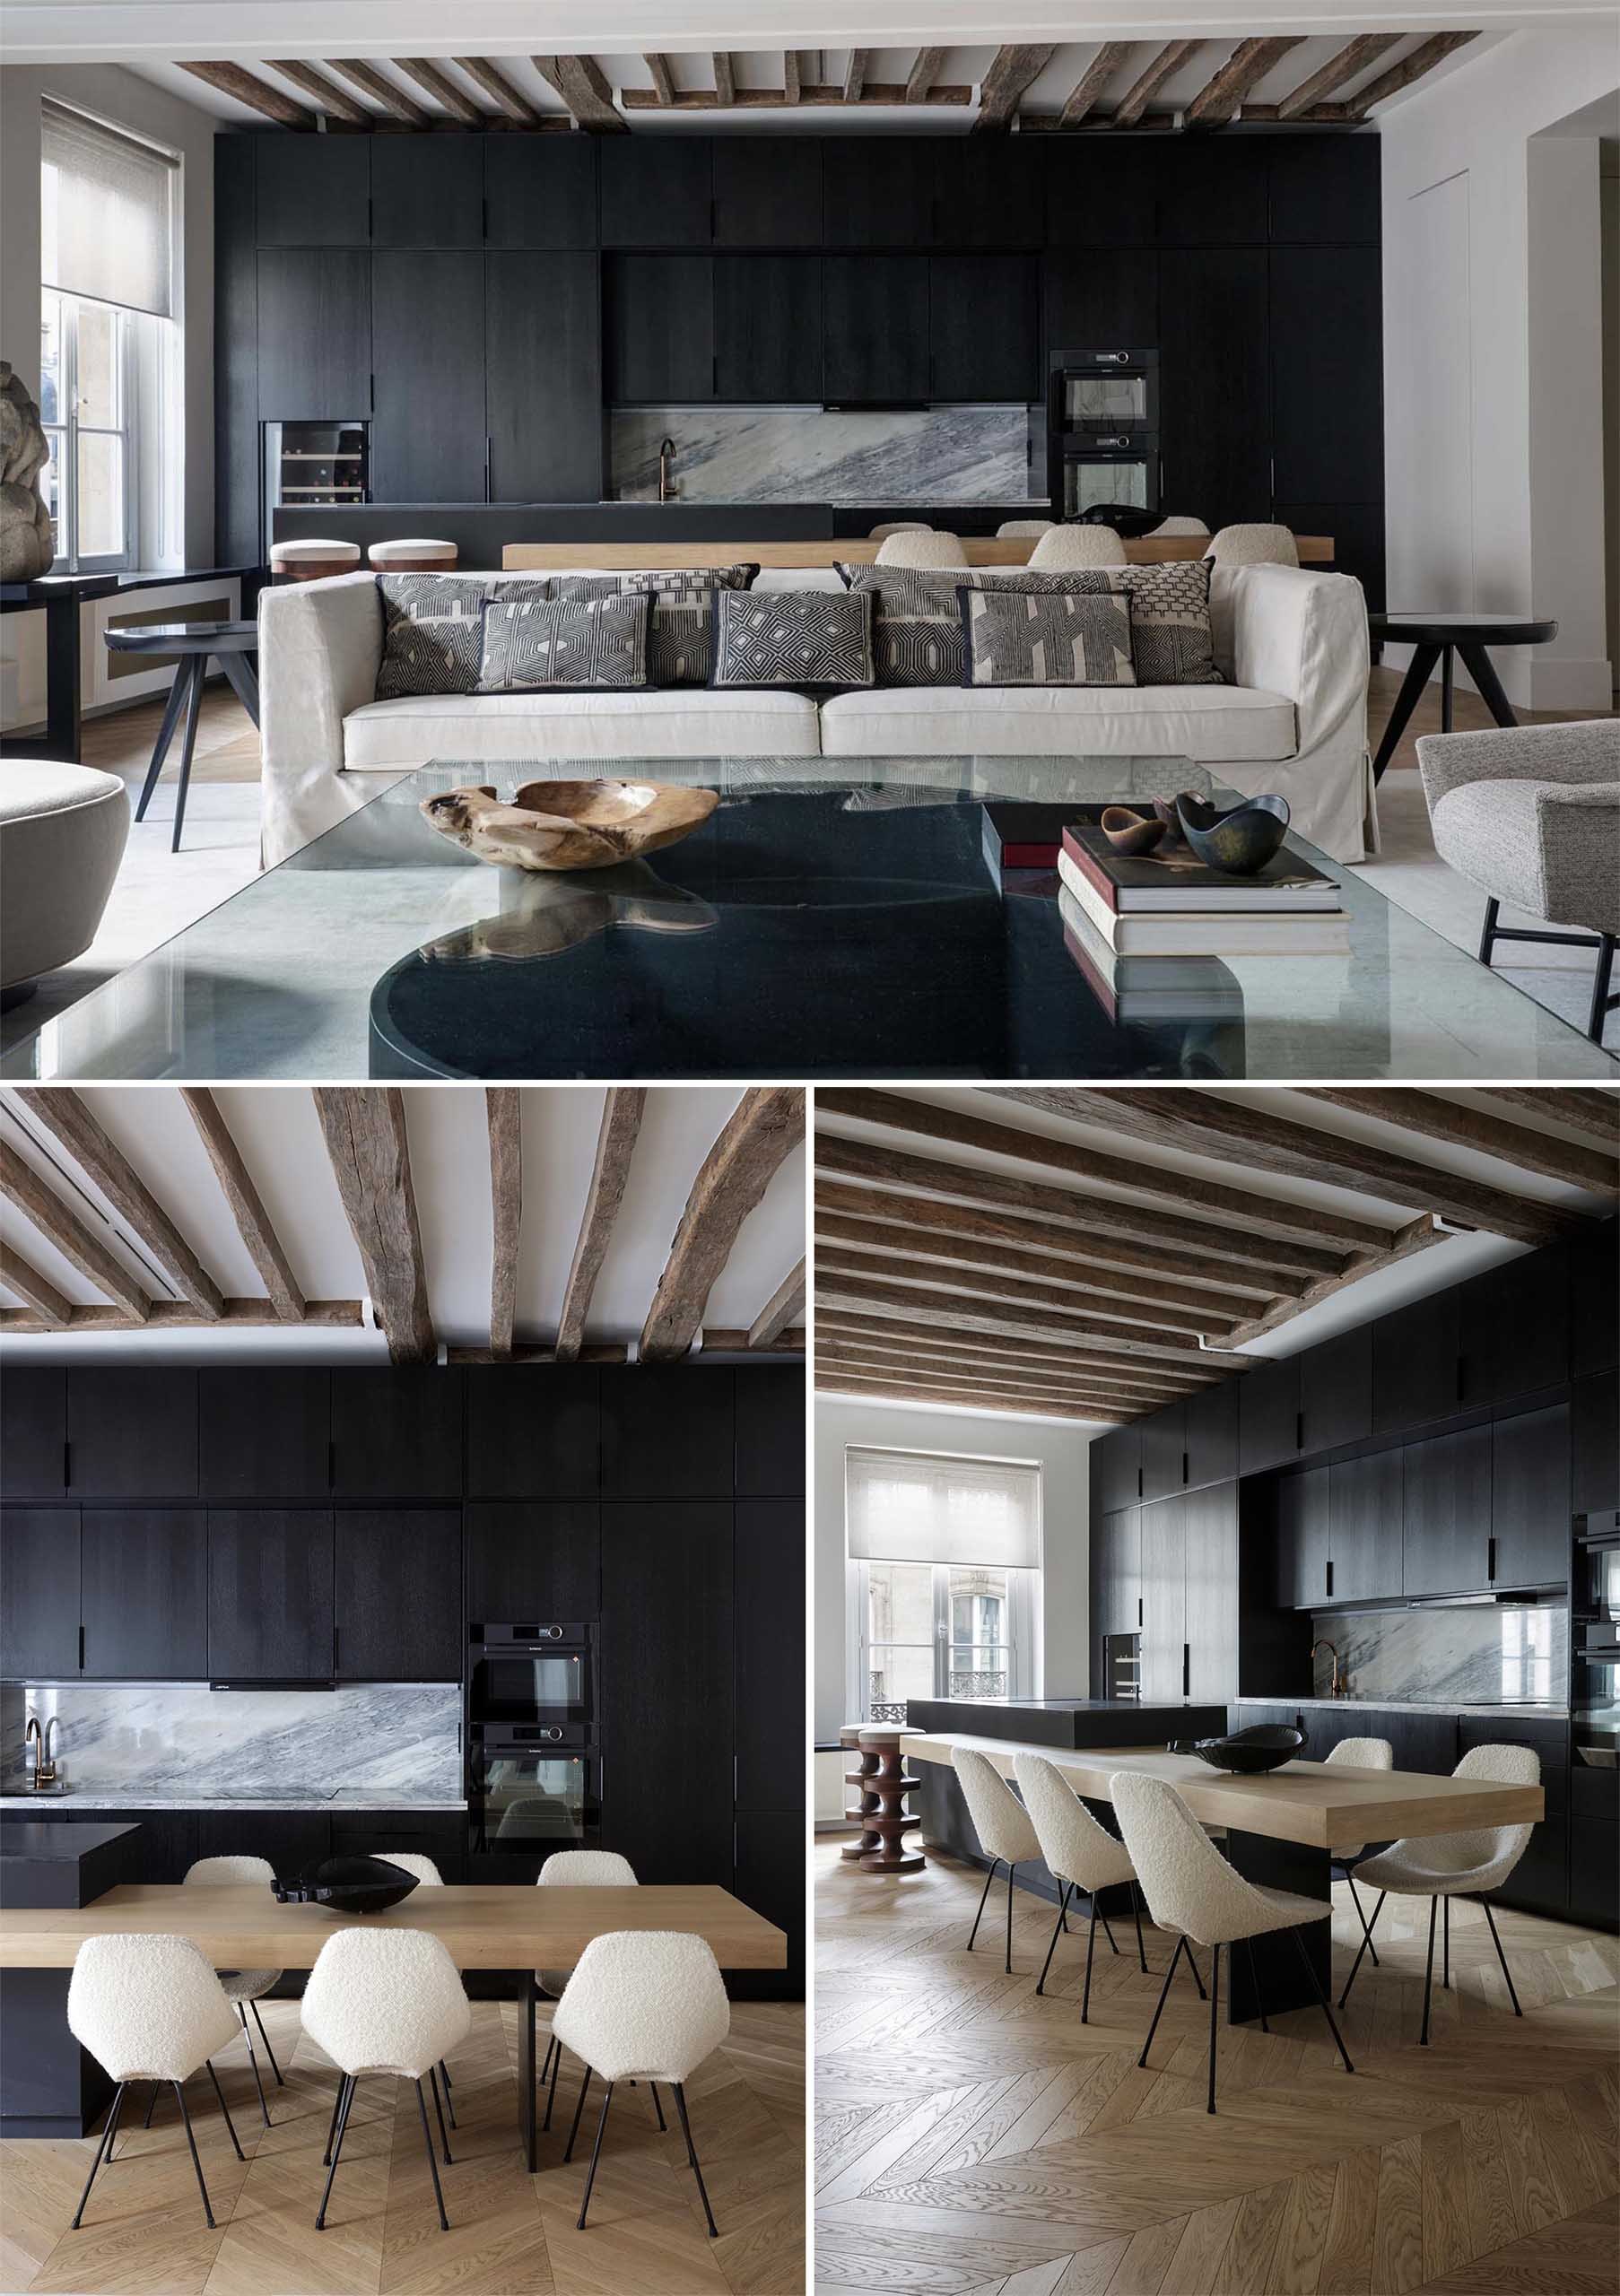 Studio Arthur Casas together with architect Marina Werfel has designed the interiors of a modern apartment in Paris, France, that includes a striking matte black kitchen.